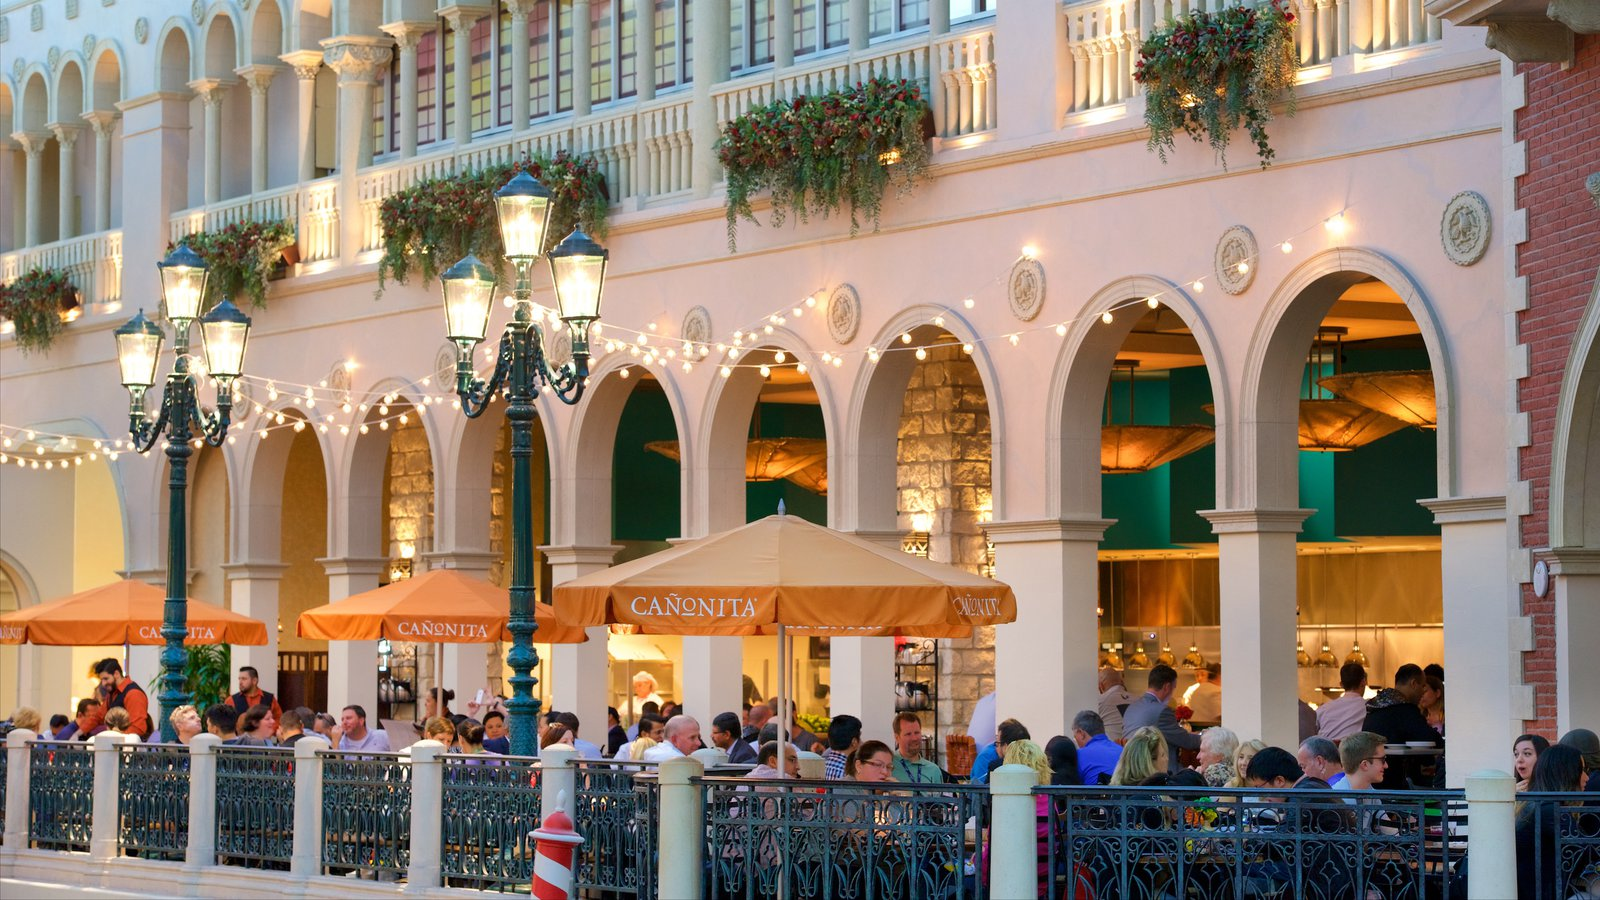 Grand Canal Shoppes featuring dining out and a casino as well as a large group of people